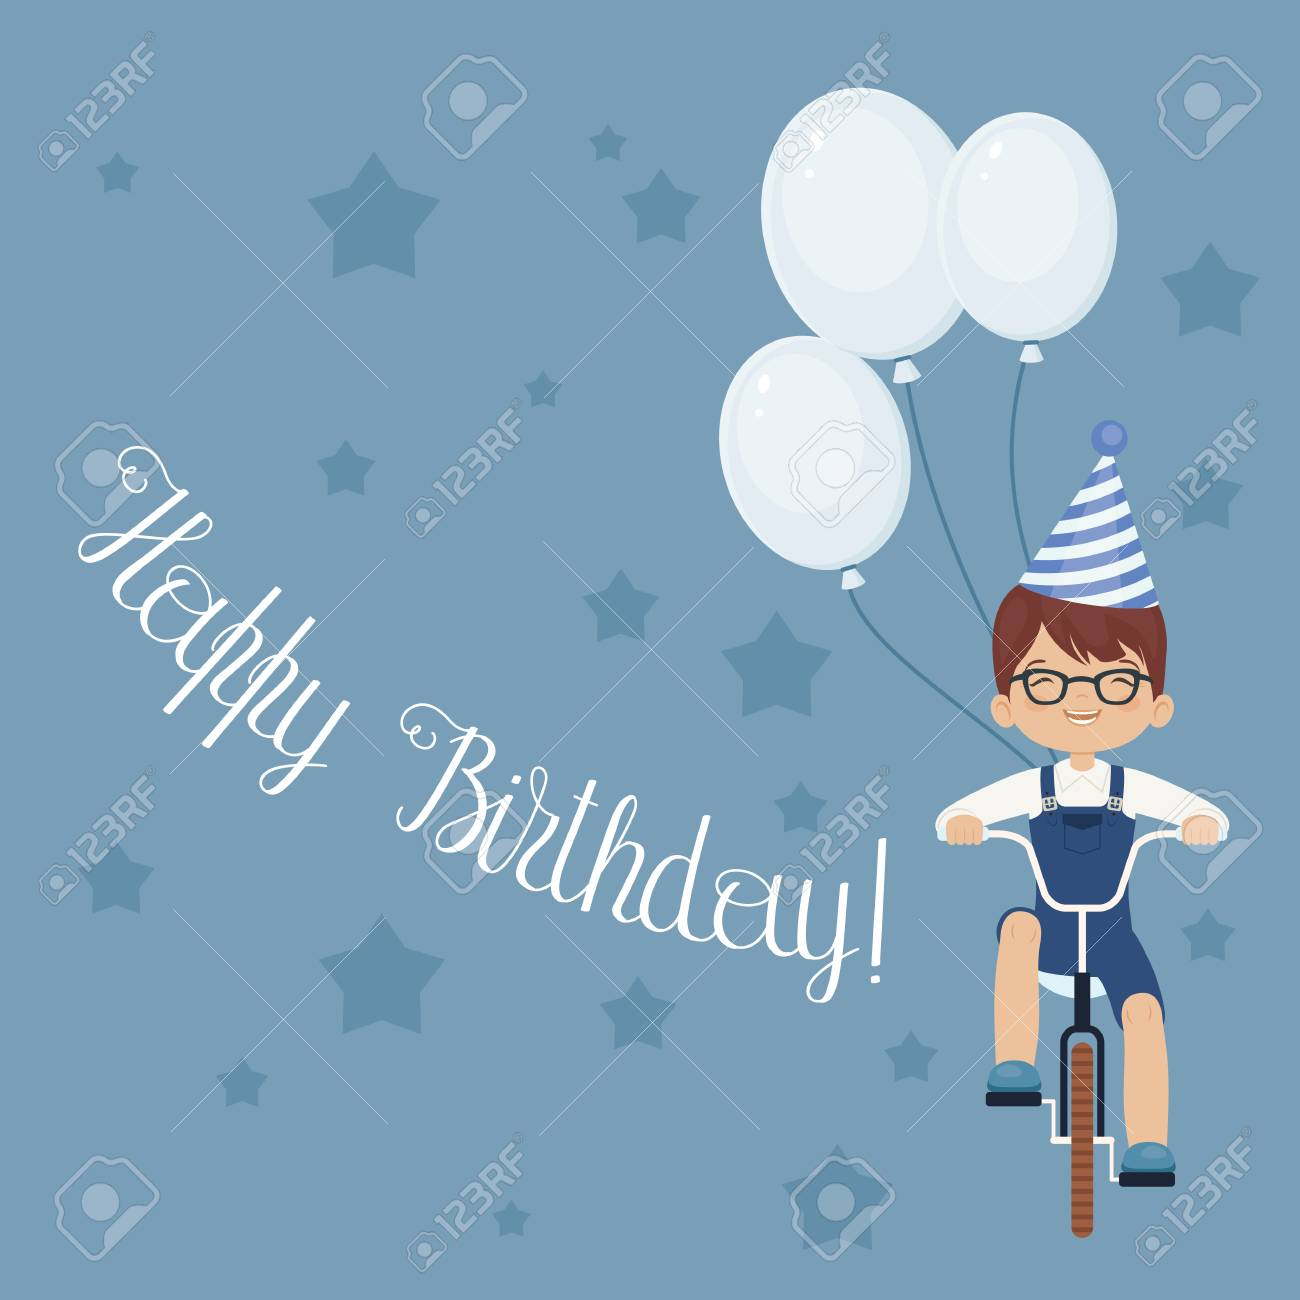 Happy laughing little boy riding a bicycle in party hat with happy laughing little boy riding a bicycle in party hat with balloons happy birthday kristyandbryce Choice Image